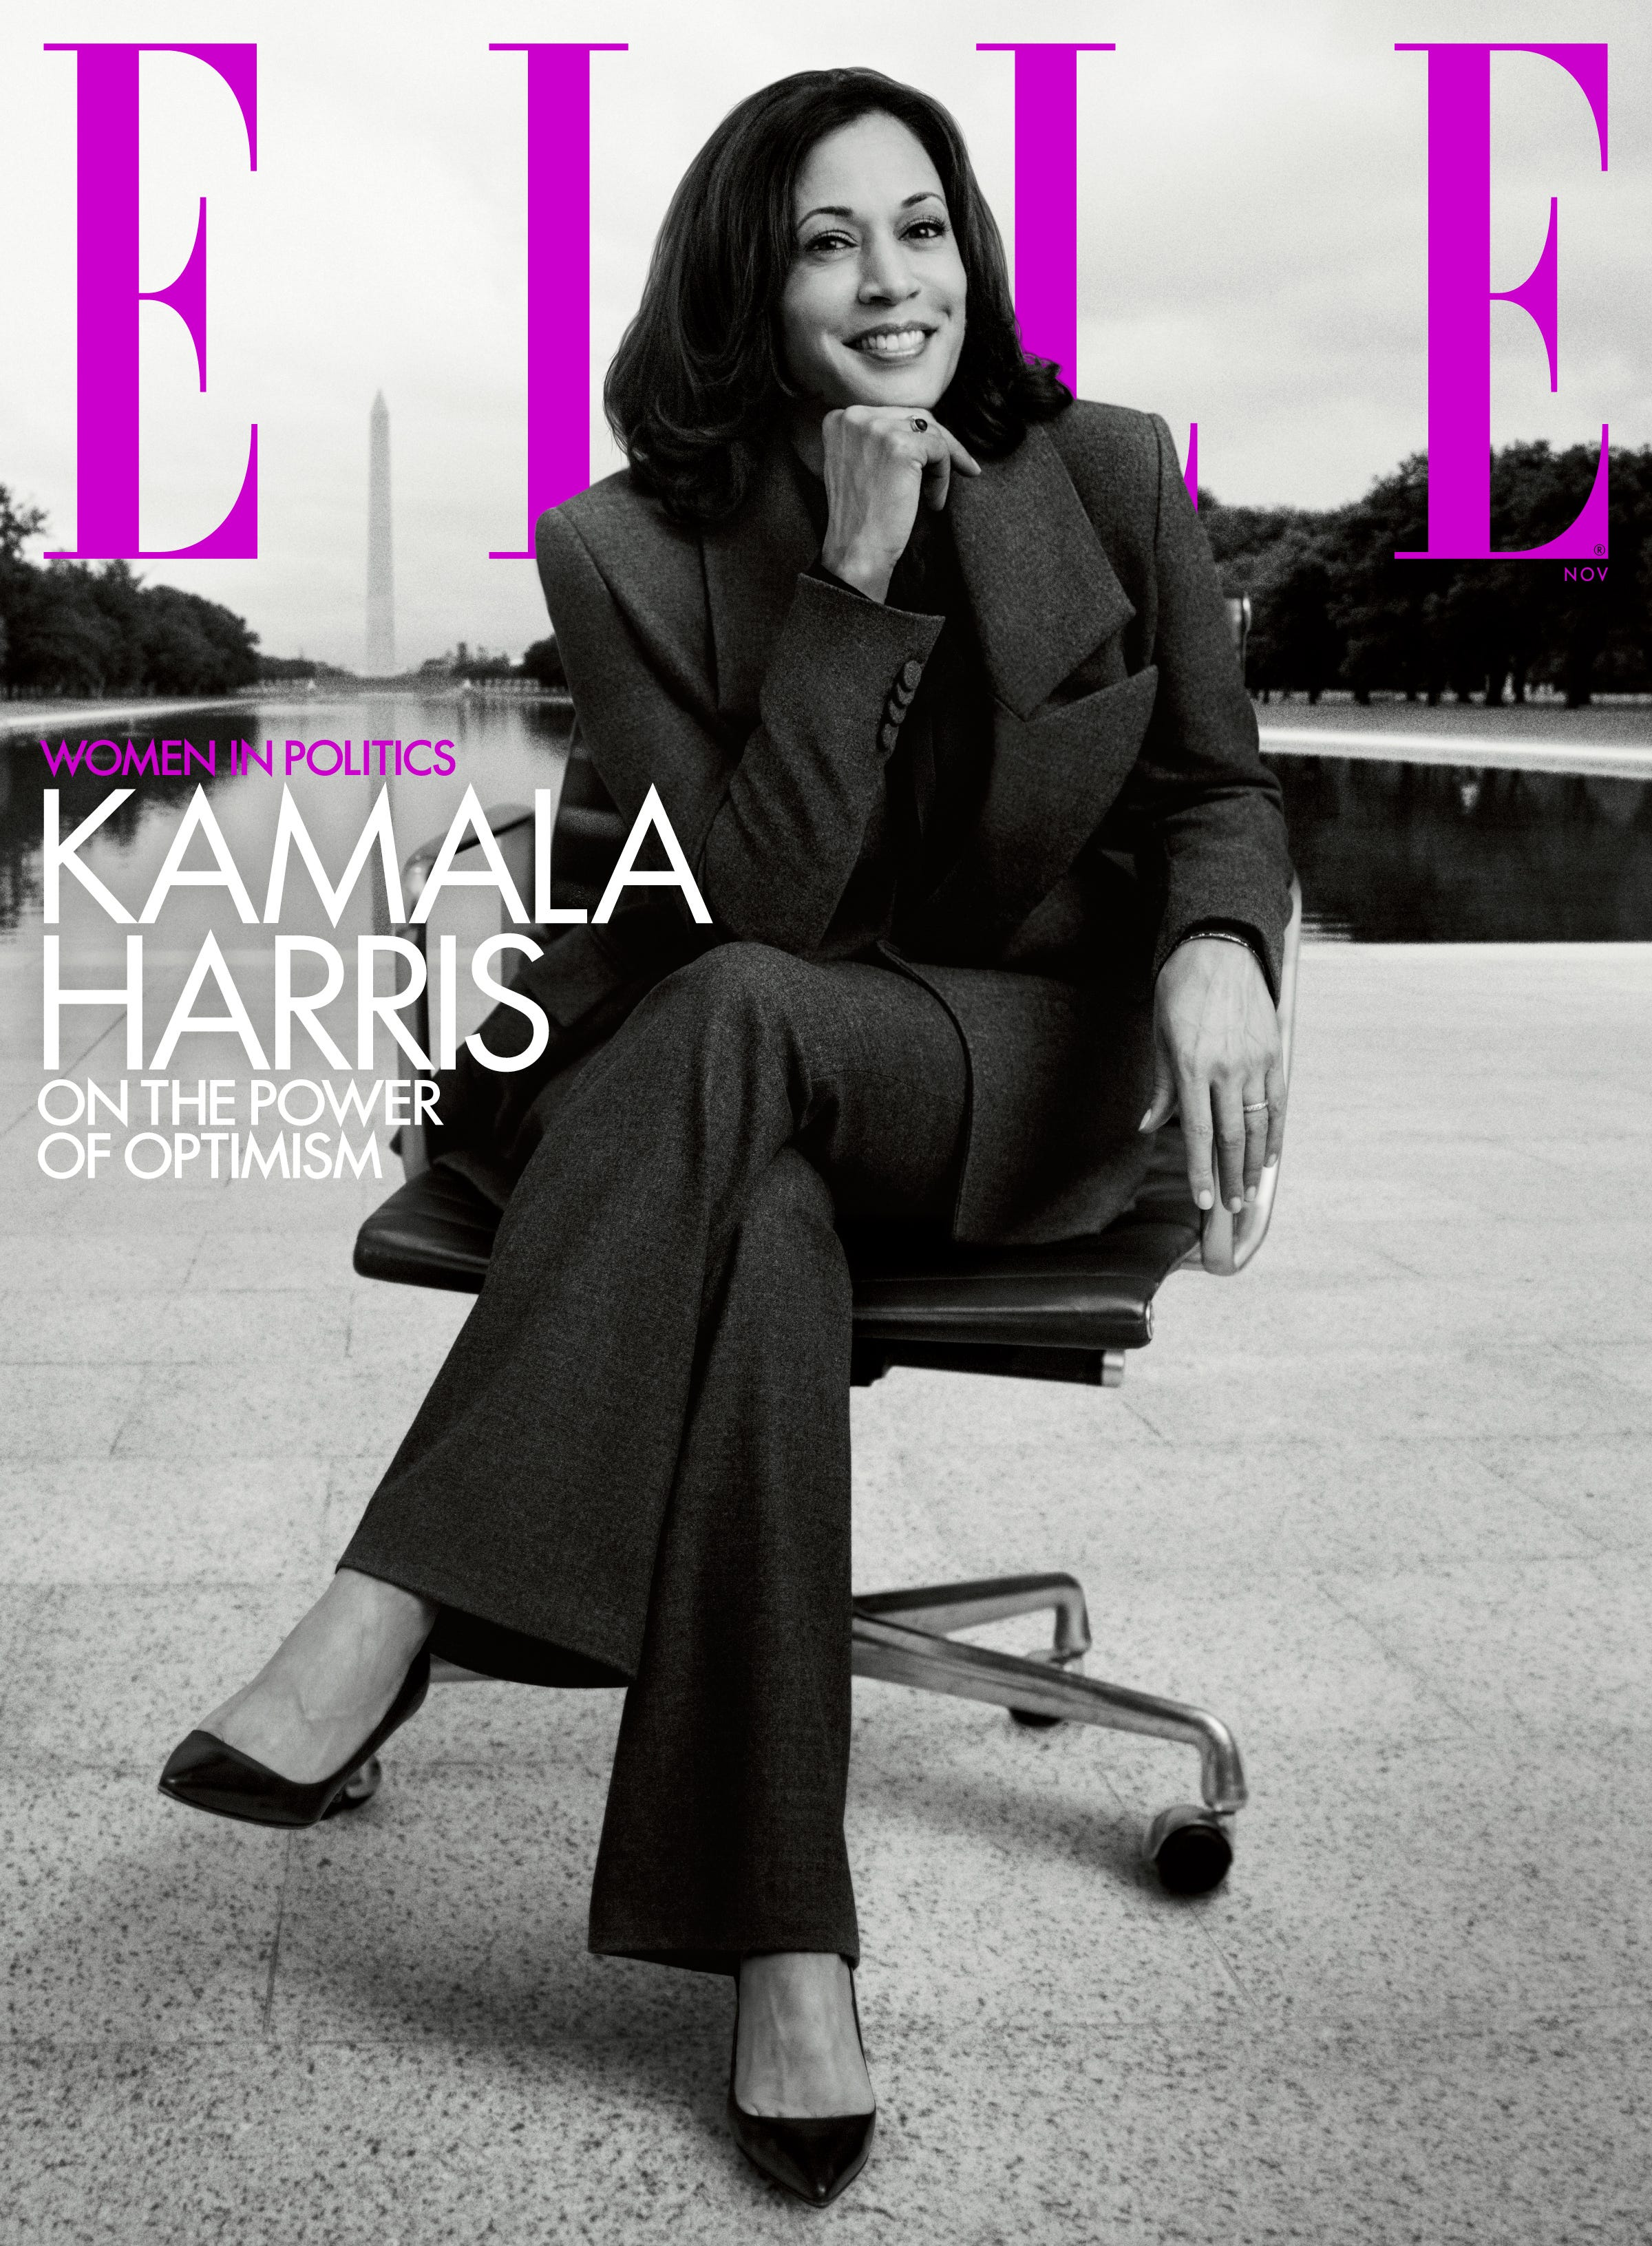 I see you : Kamala Harris covers ELLE, talks fight for justice, hopes for the future